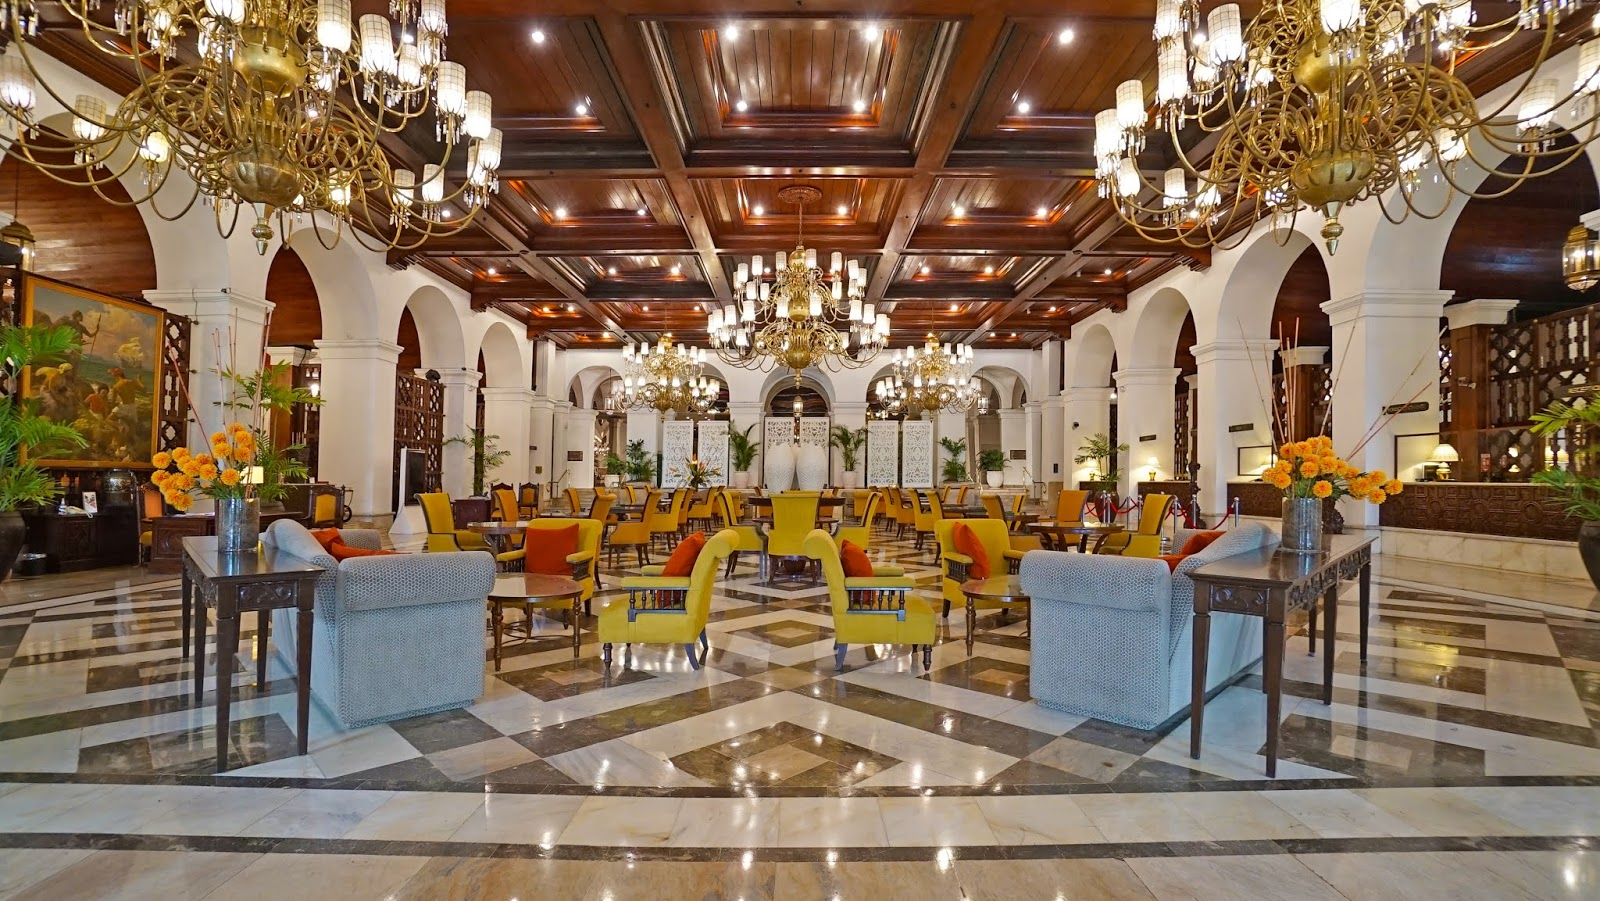 The Grand Lobby of the historic Manila Hotel